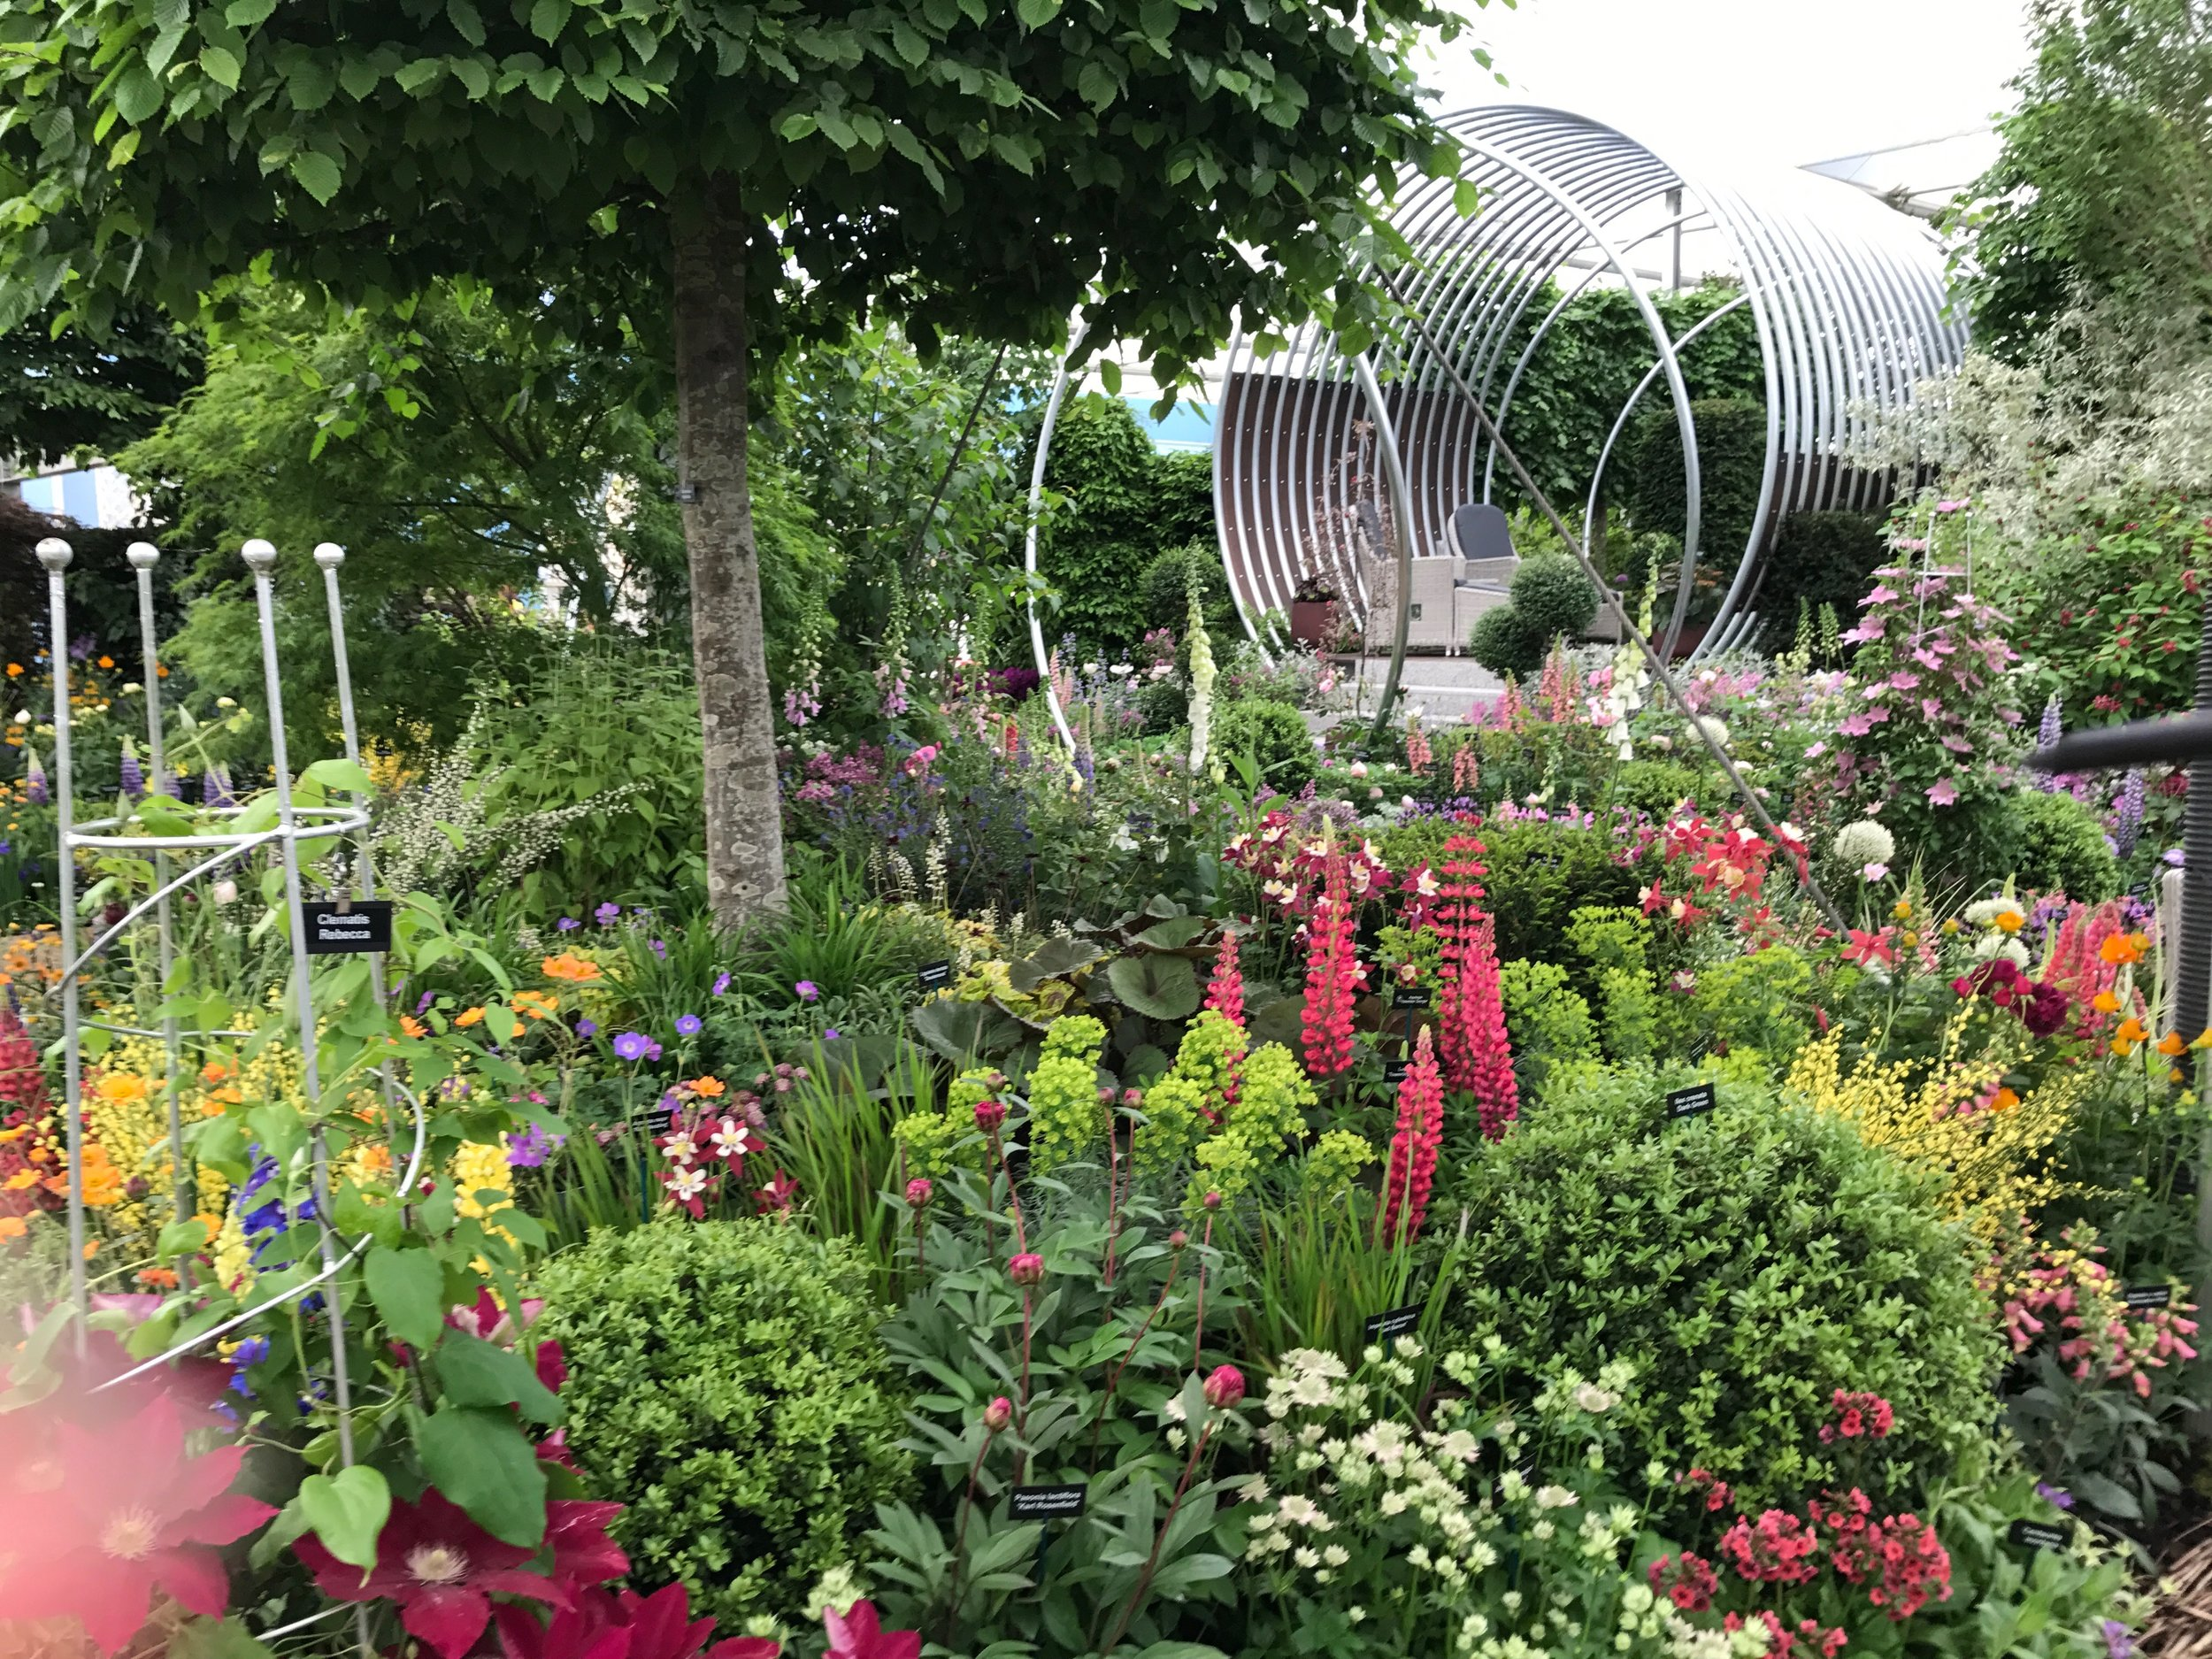 Royal Horticultural Society (RHS) Chelsea Flower Show - Gillian Goodson Designs